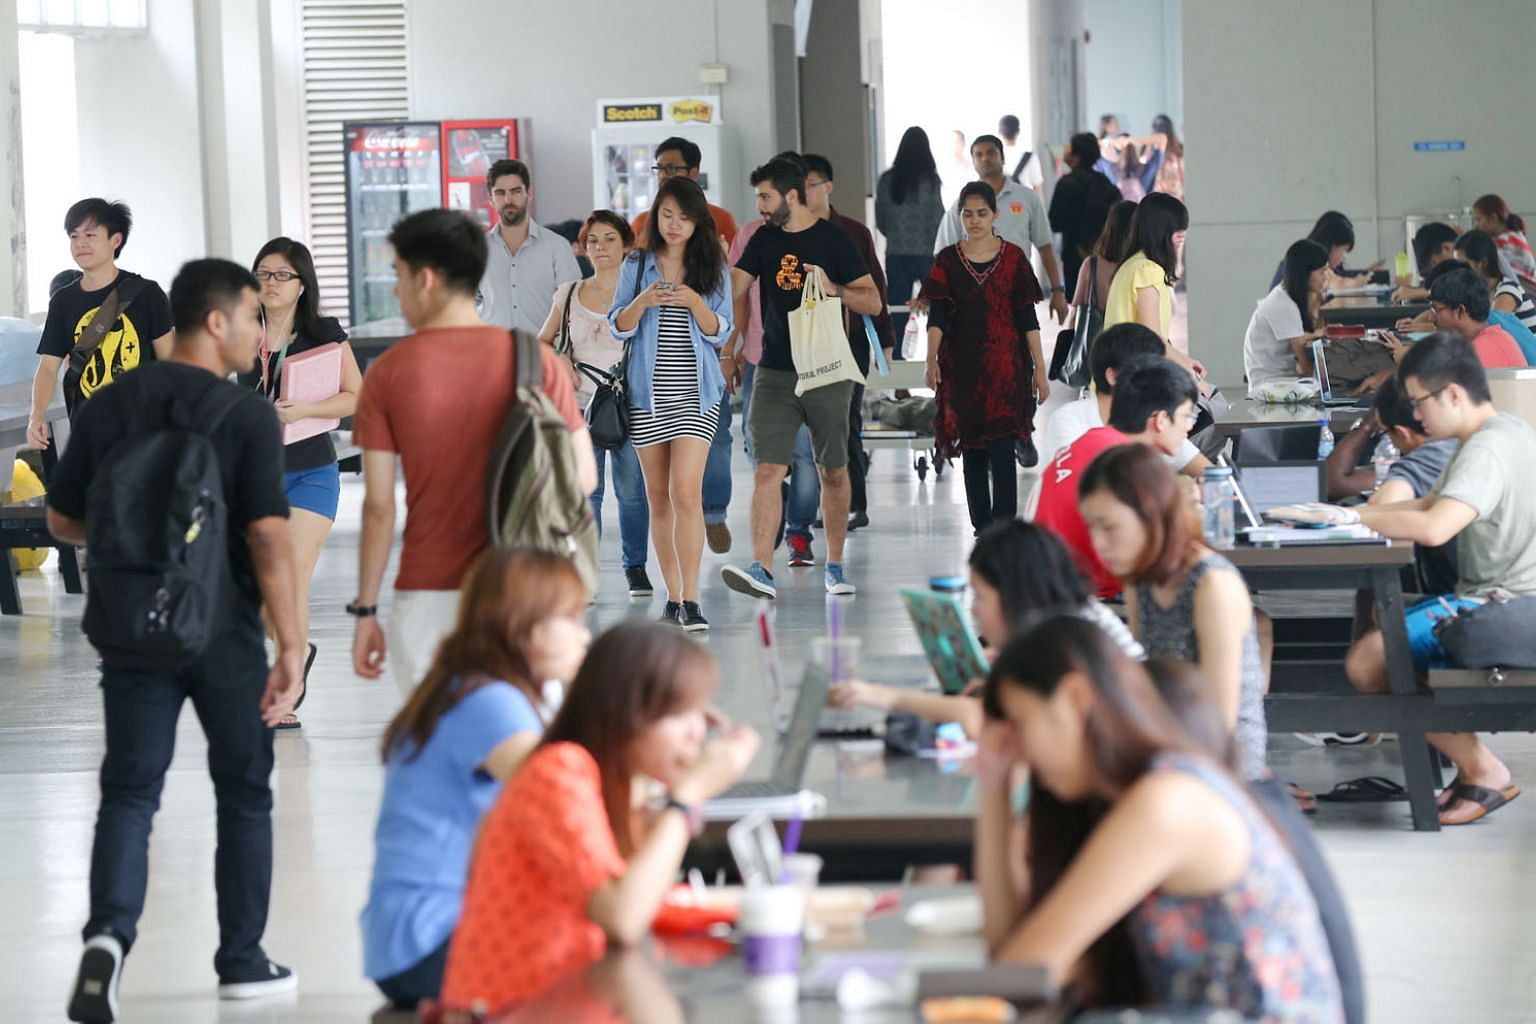 With Nanyang Technological University's improvement, global higher education consultancy Quacquarelli Symonds says the prospect of a Singapore university entering the world's top 10 has increased.